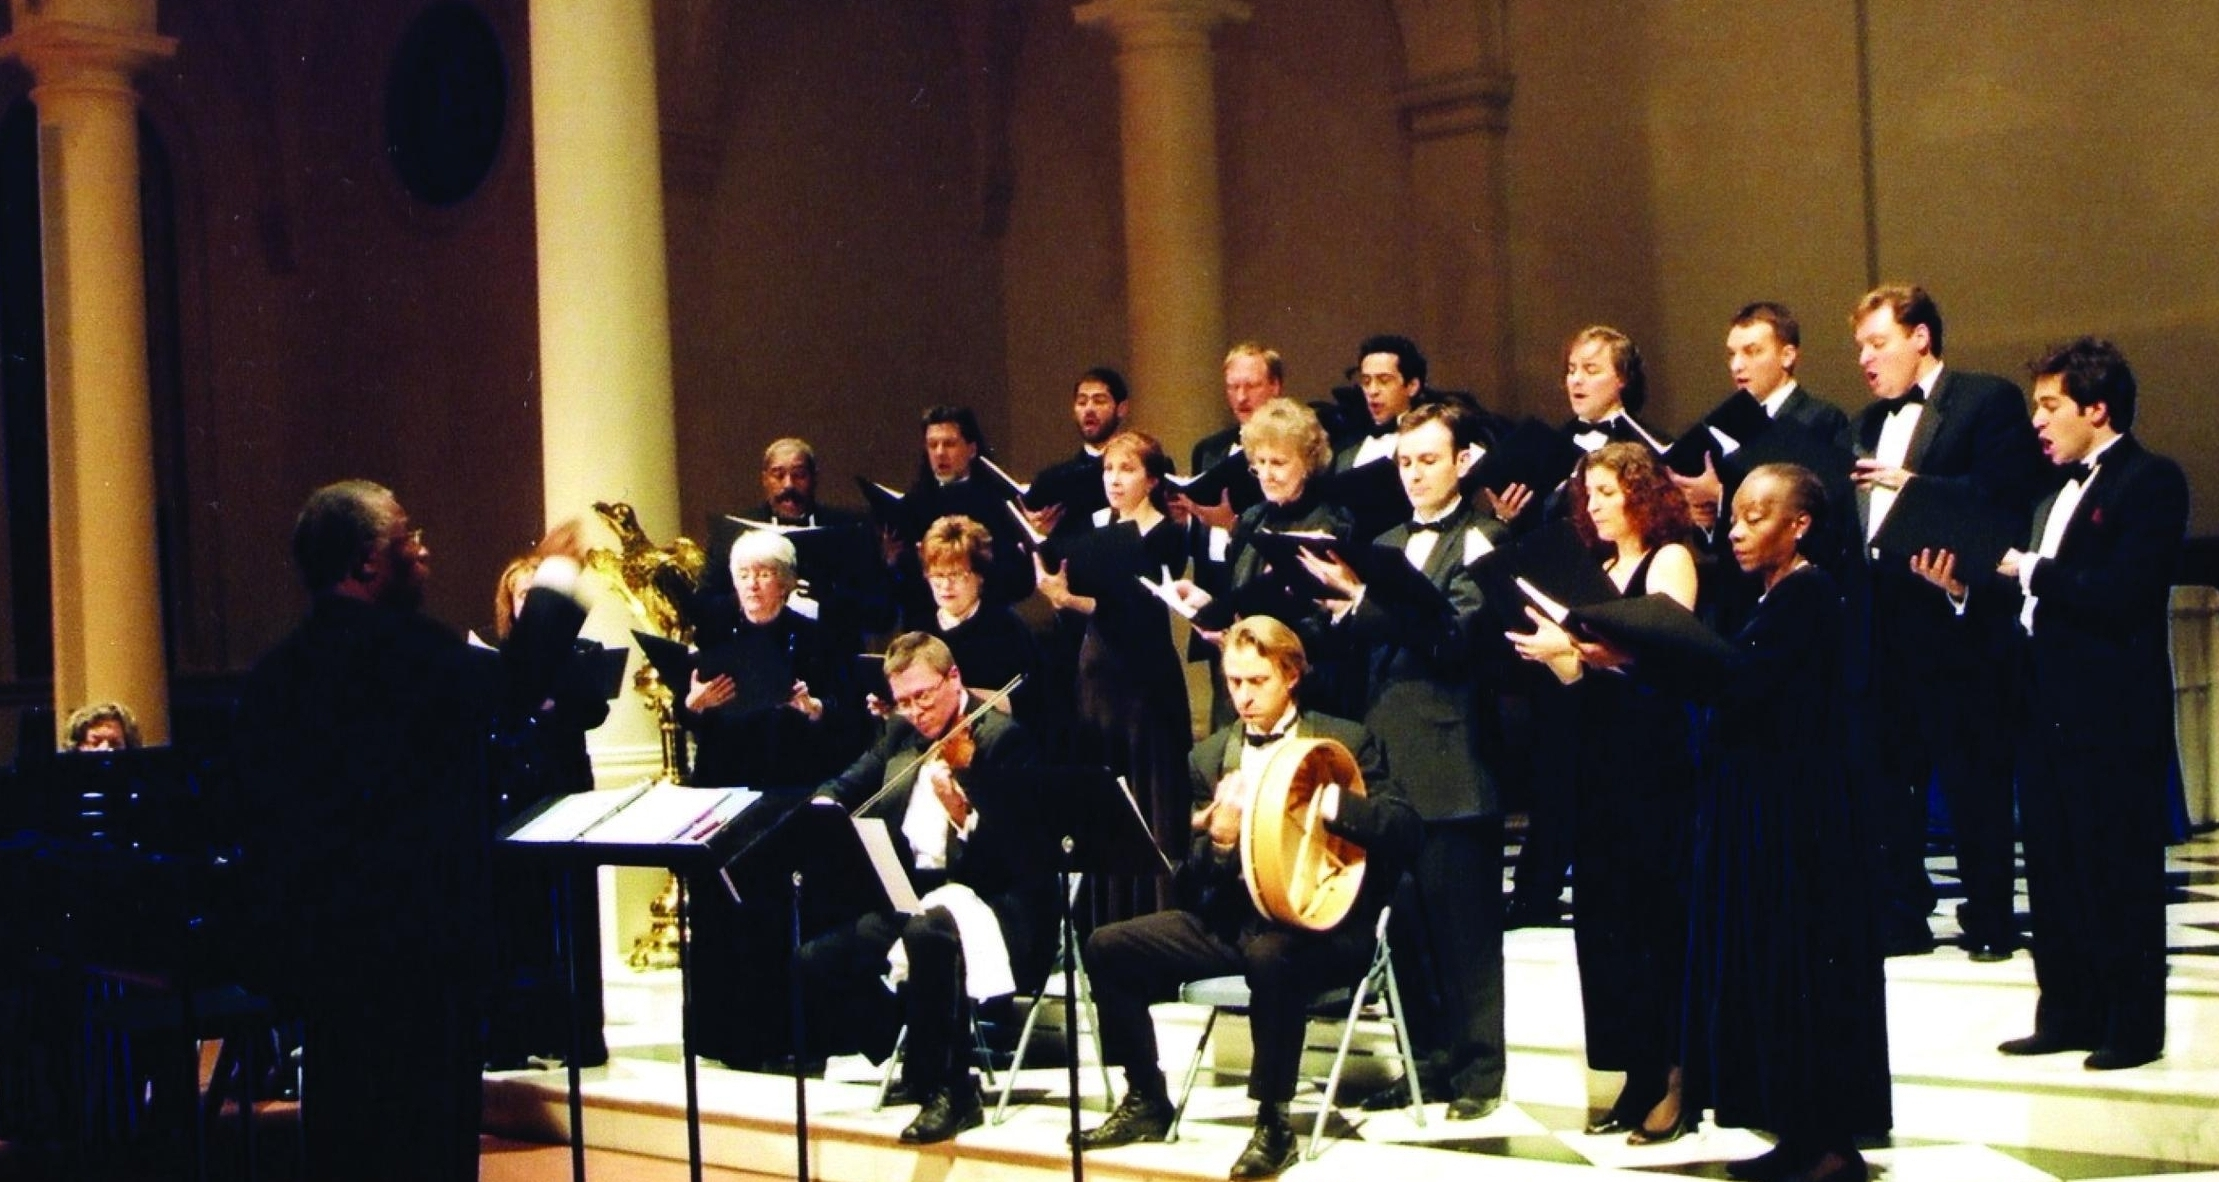 Performing at Church of the Holy Apostles, New York City, 2003.